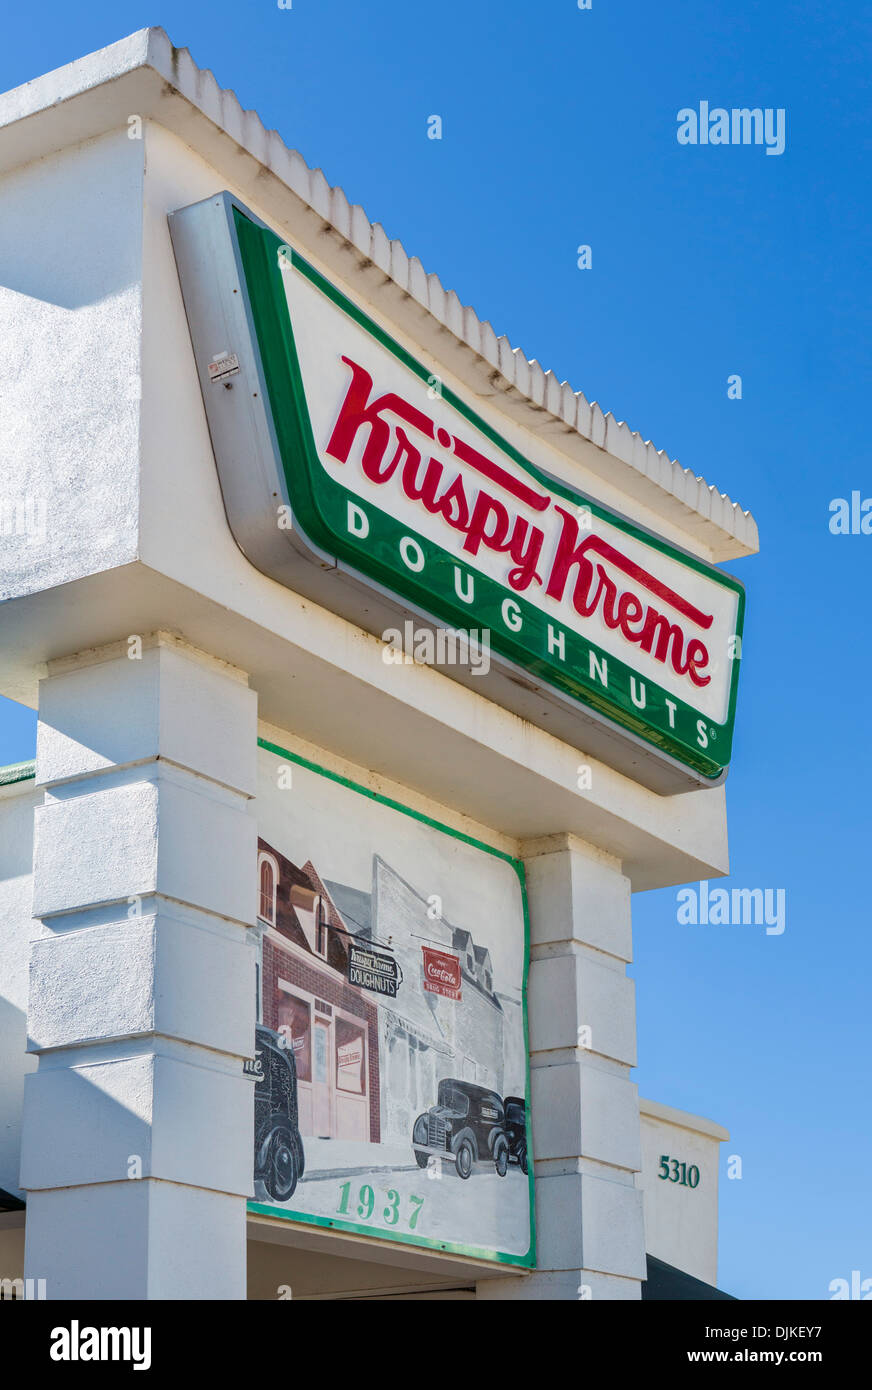 Krispy Kreme Doughnuts Store, Highway 192, Kissimmee, Orlando, Central Florida, USA - Stock Image